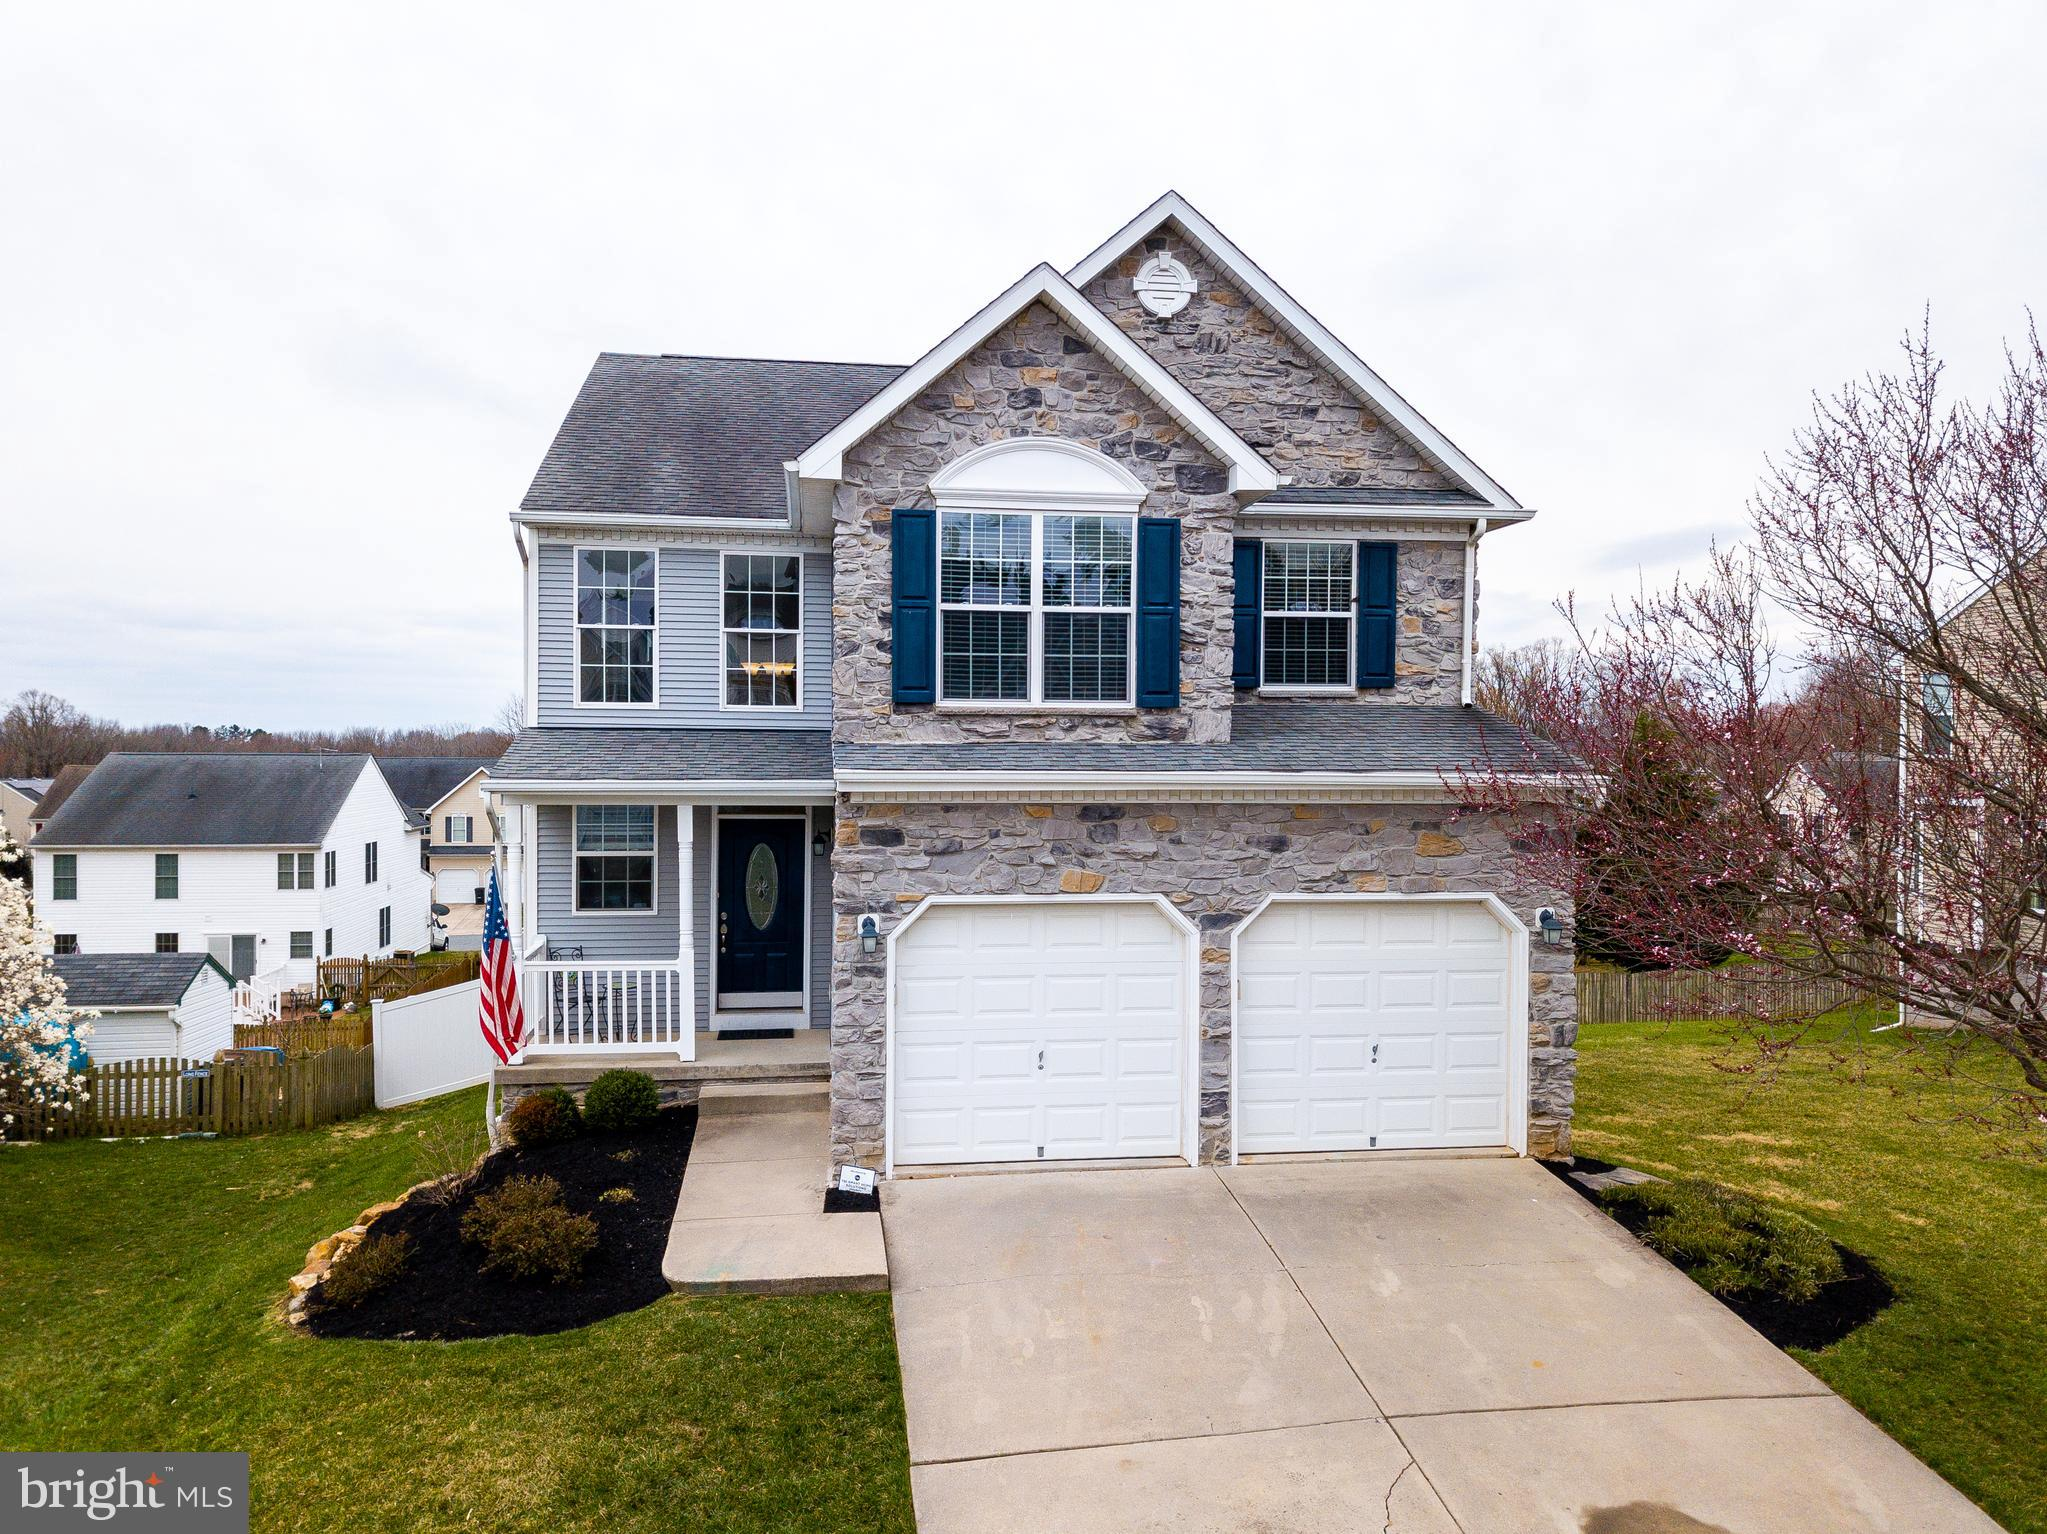 103 COVE POINT WAY, PERRYVILLE, MD 21903